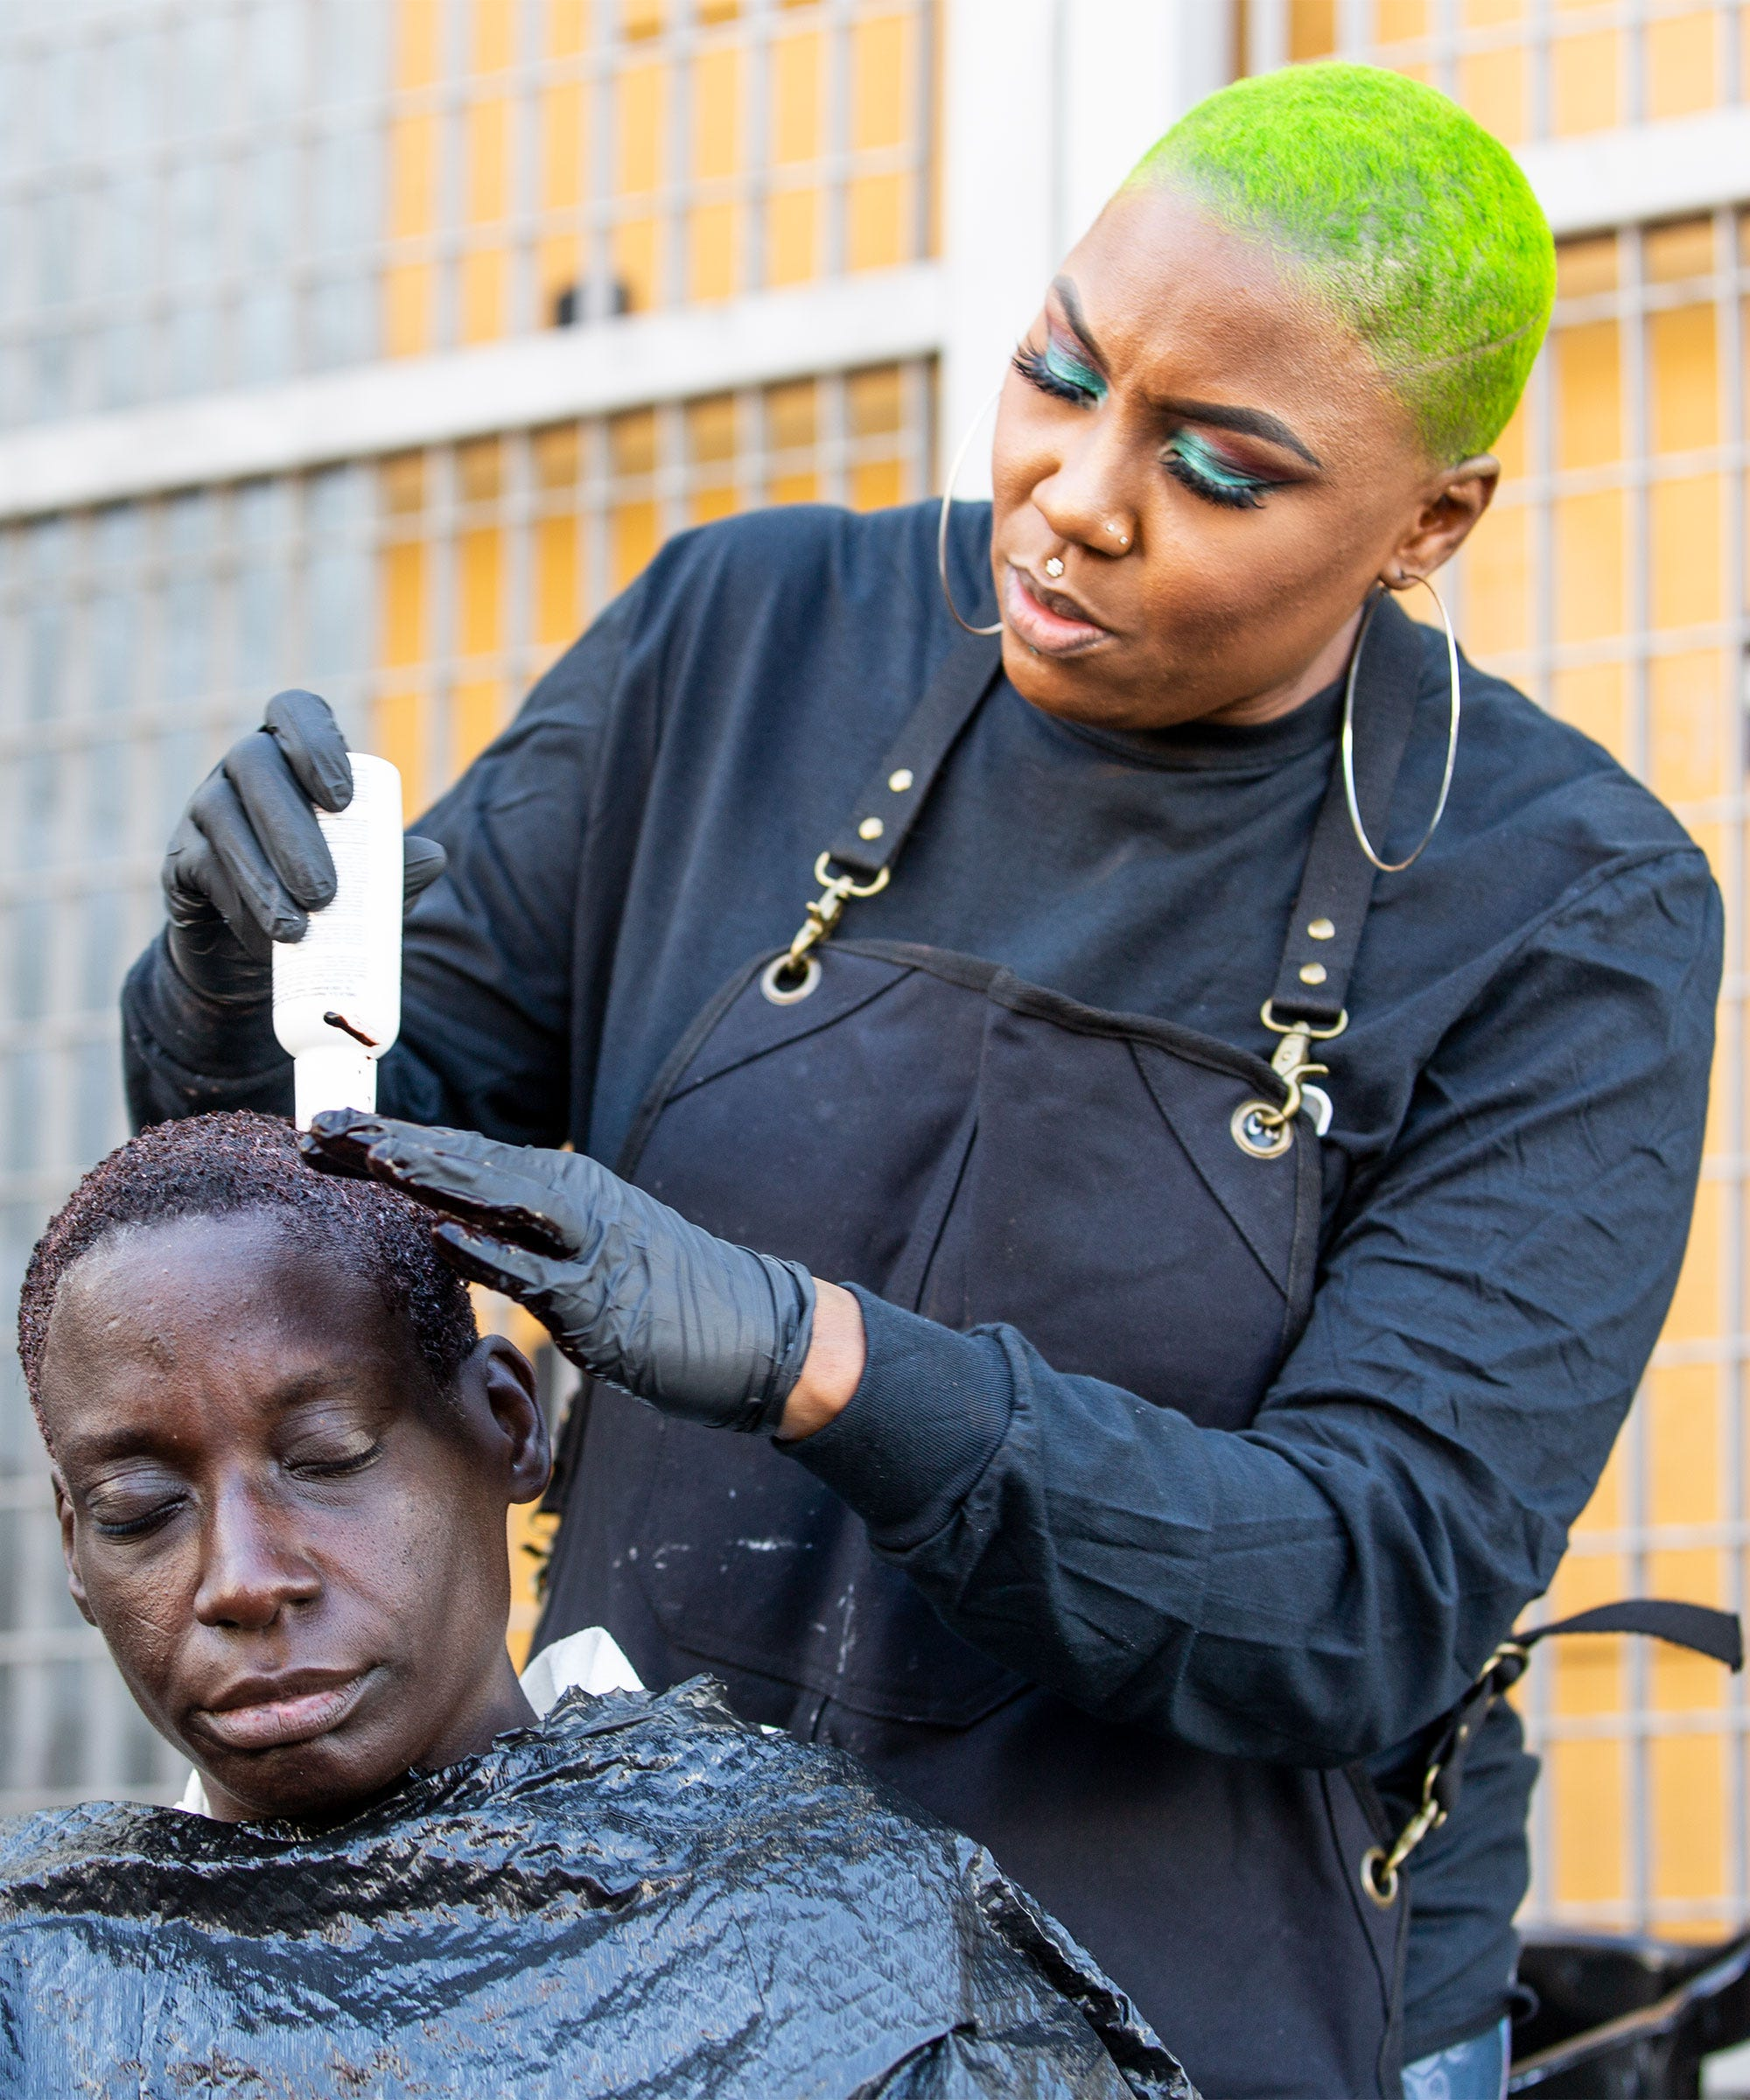 What Beauty Is Like For Homeless Women On The Streets